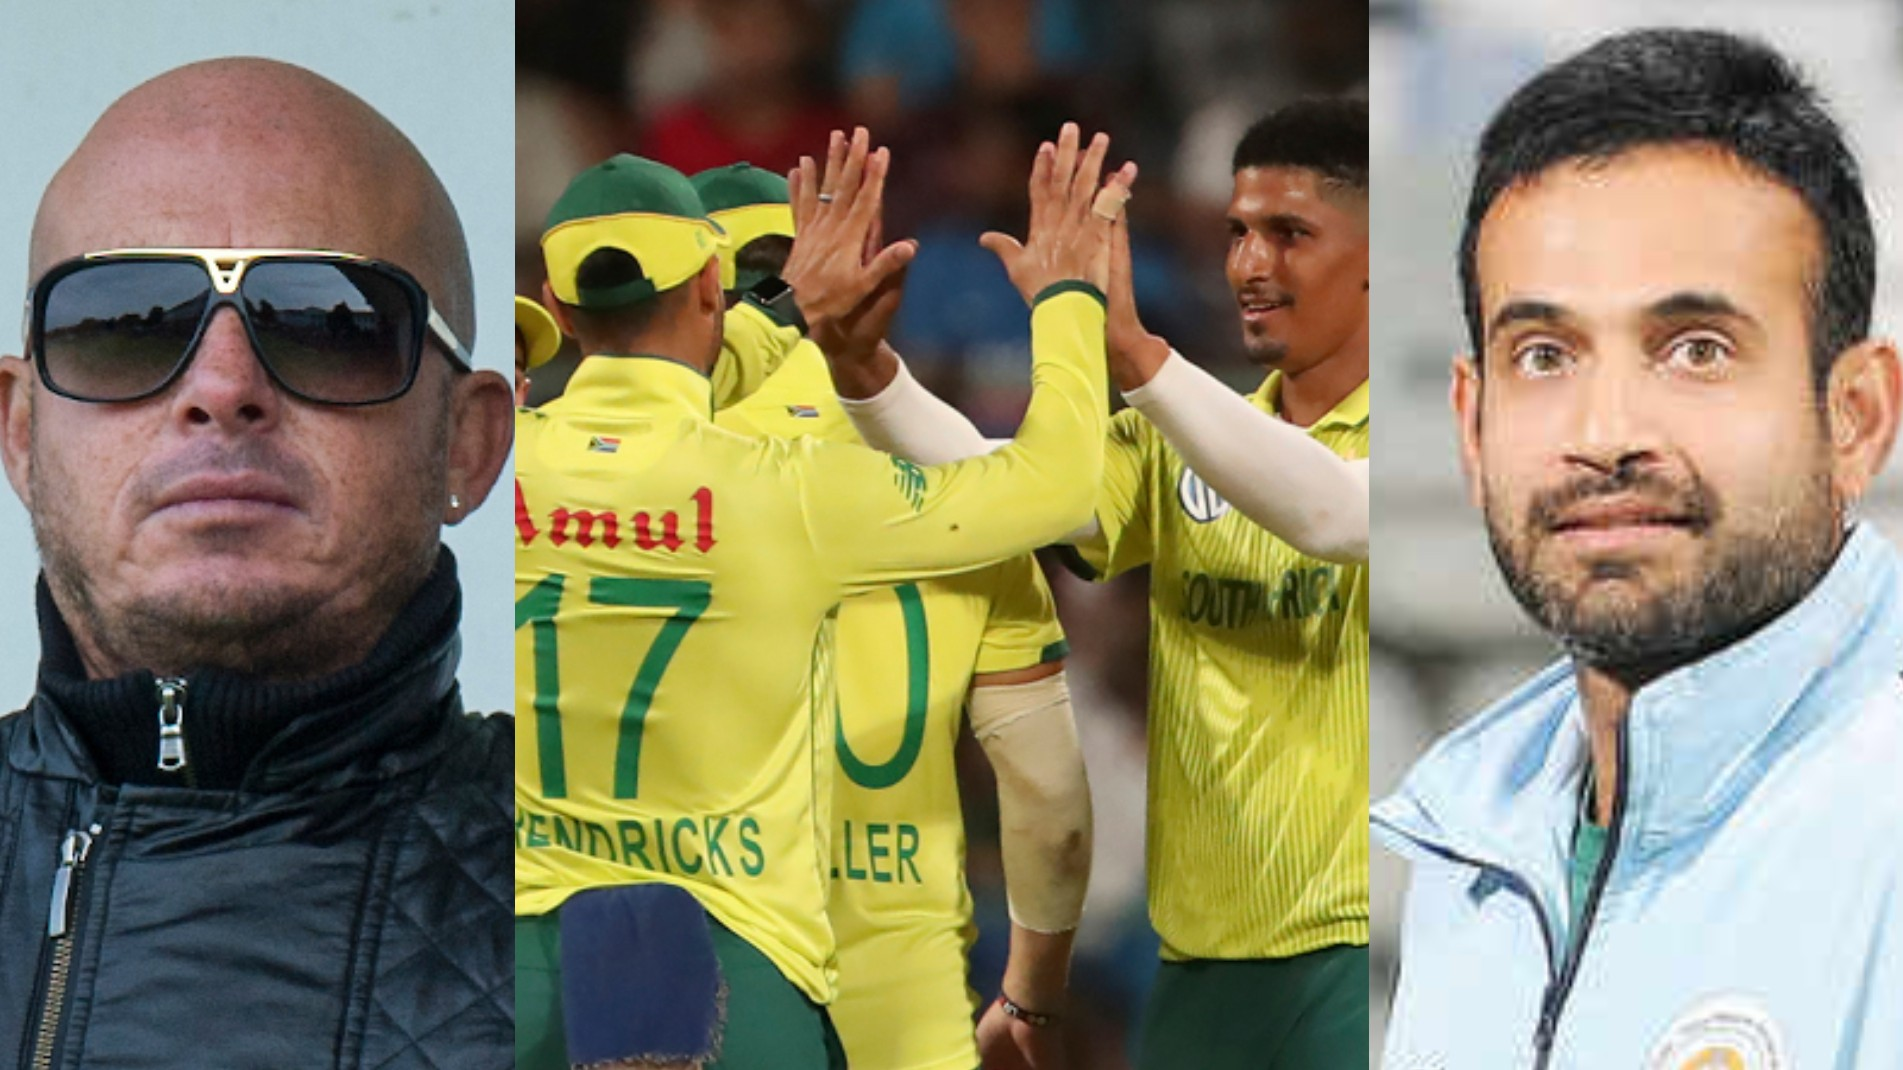 IND v SA 2019: Cricket fraternity reacts as Rabada and De Kock hand Proteas 9-wicket win; series tied 1-1